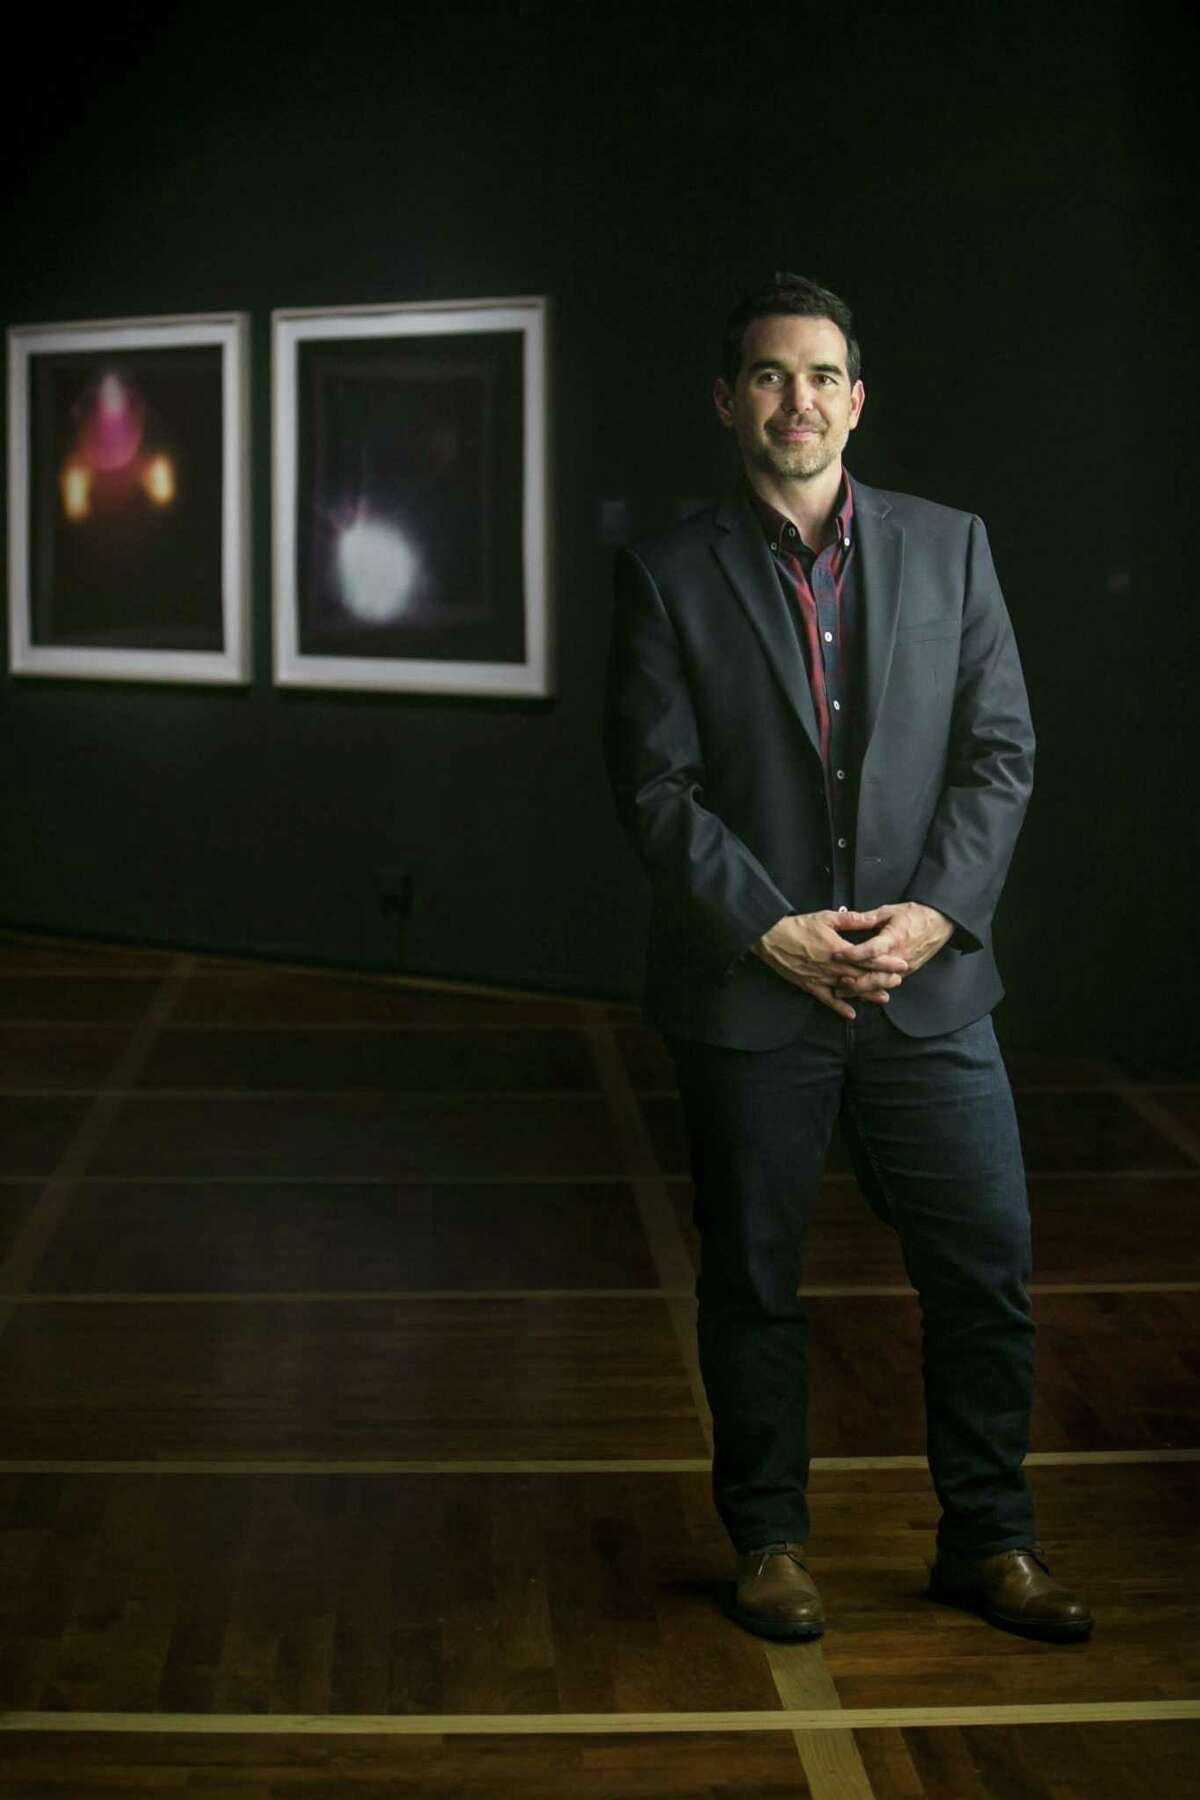 """Dario Robleto poses beside prints created from album covers that include images of stage lights from the shows of now-deceased musicians, a series called """"The Sky, Once Choked with Stars, Will Slowly Darken."""" The prints are among works on view in Robleto's solo show """"Ancient Beacons Long for Notice"""" at the McNay."""